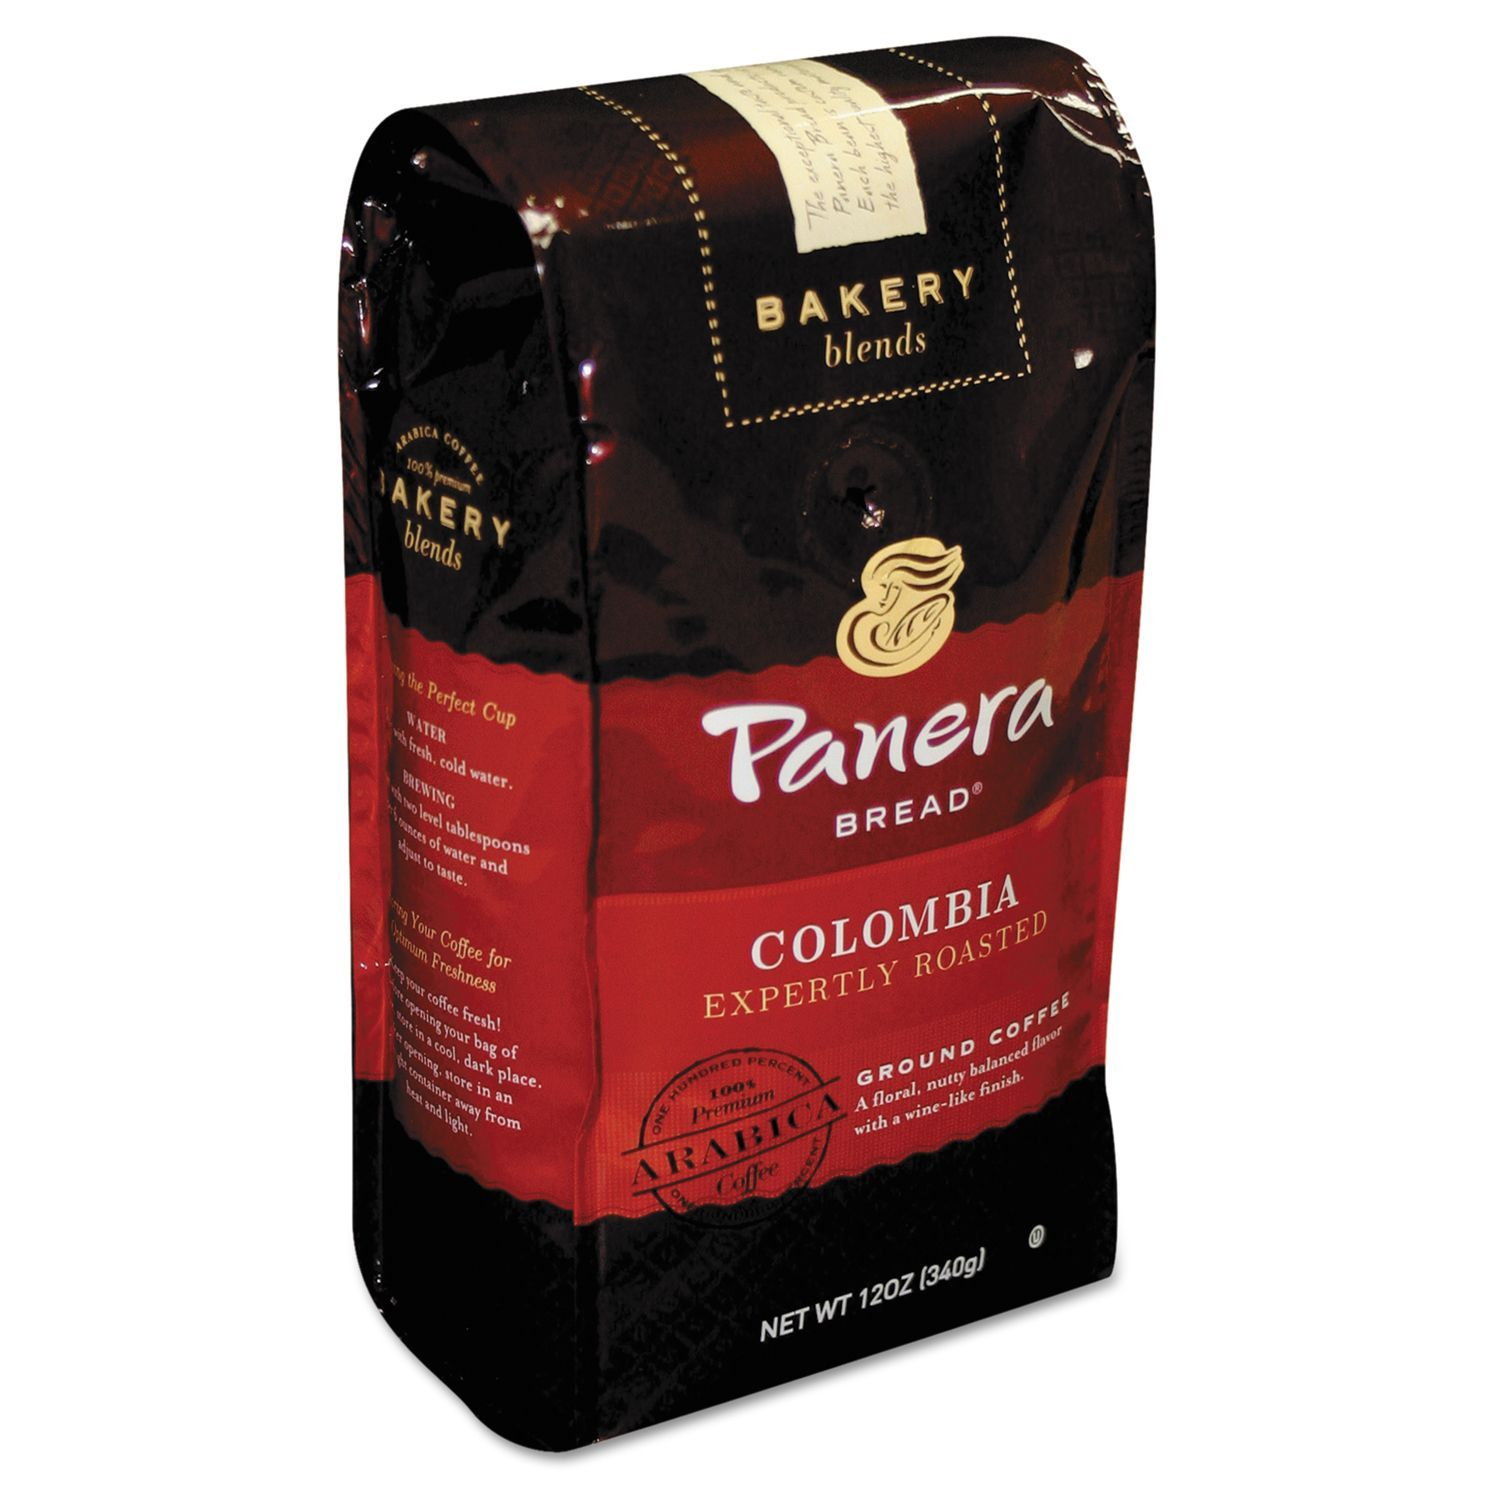 Panera Bread Coffee Box Stunning Panera Bread Colombia Roast 12 Oz Bag Ground  My Favorite Things Design Inspiration